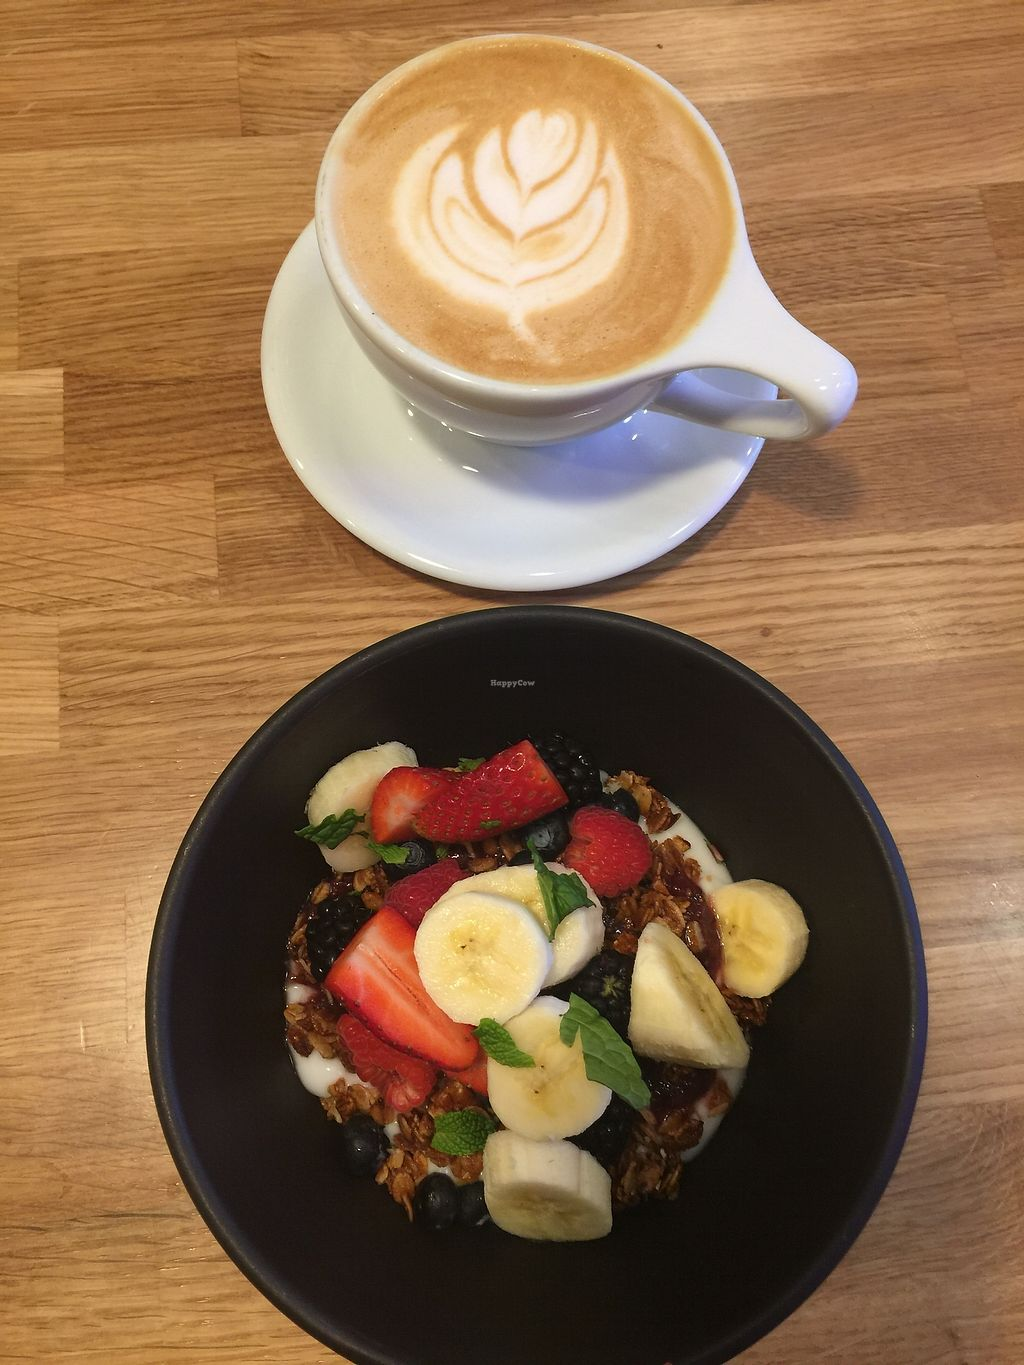 "Photo of Parakeet Cafe  by <a href=""/members/profile/vegansuncake"">vegansuncake</a> <br/>coconut yogurt bowl and lavender latte made with almond milk <br/> January 13, 2018  - <a href='/contact/abuse/image/105567/346011'>Report</a>"